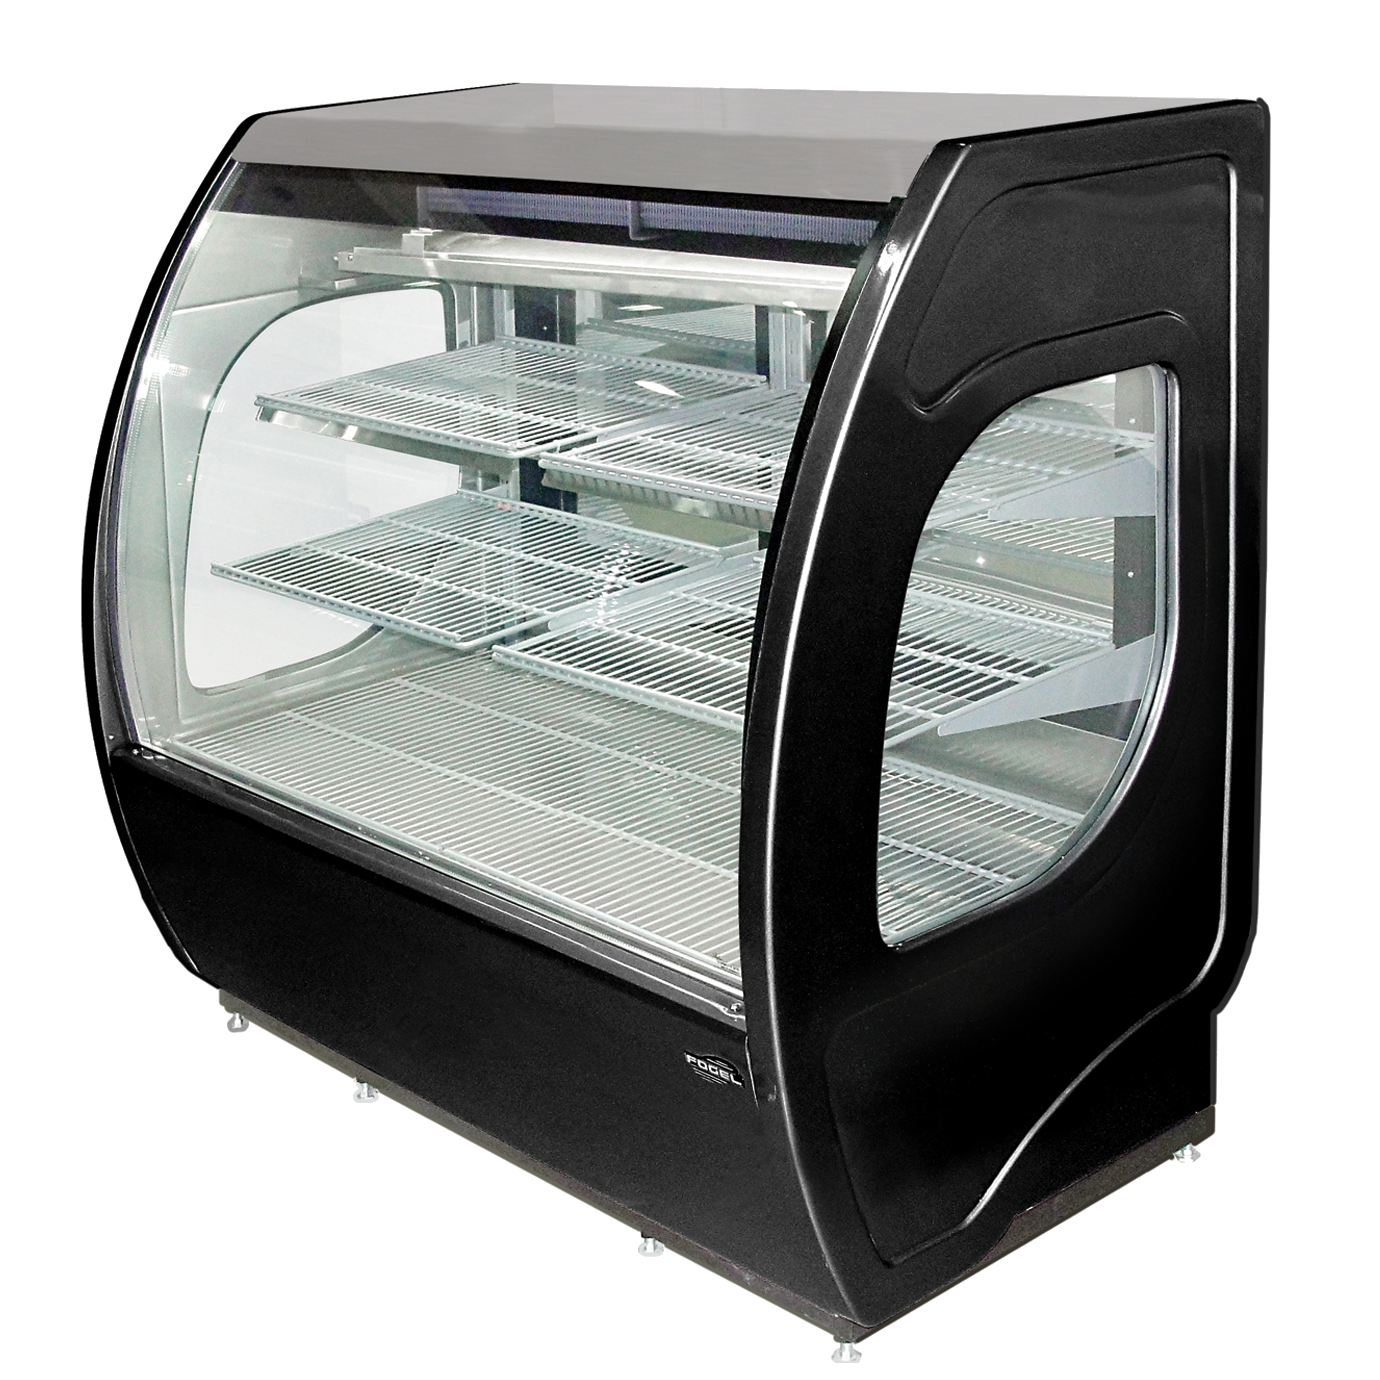 ELITE-4-DC-B Fogel USA display case, refrigerated deli